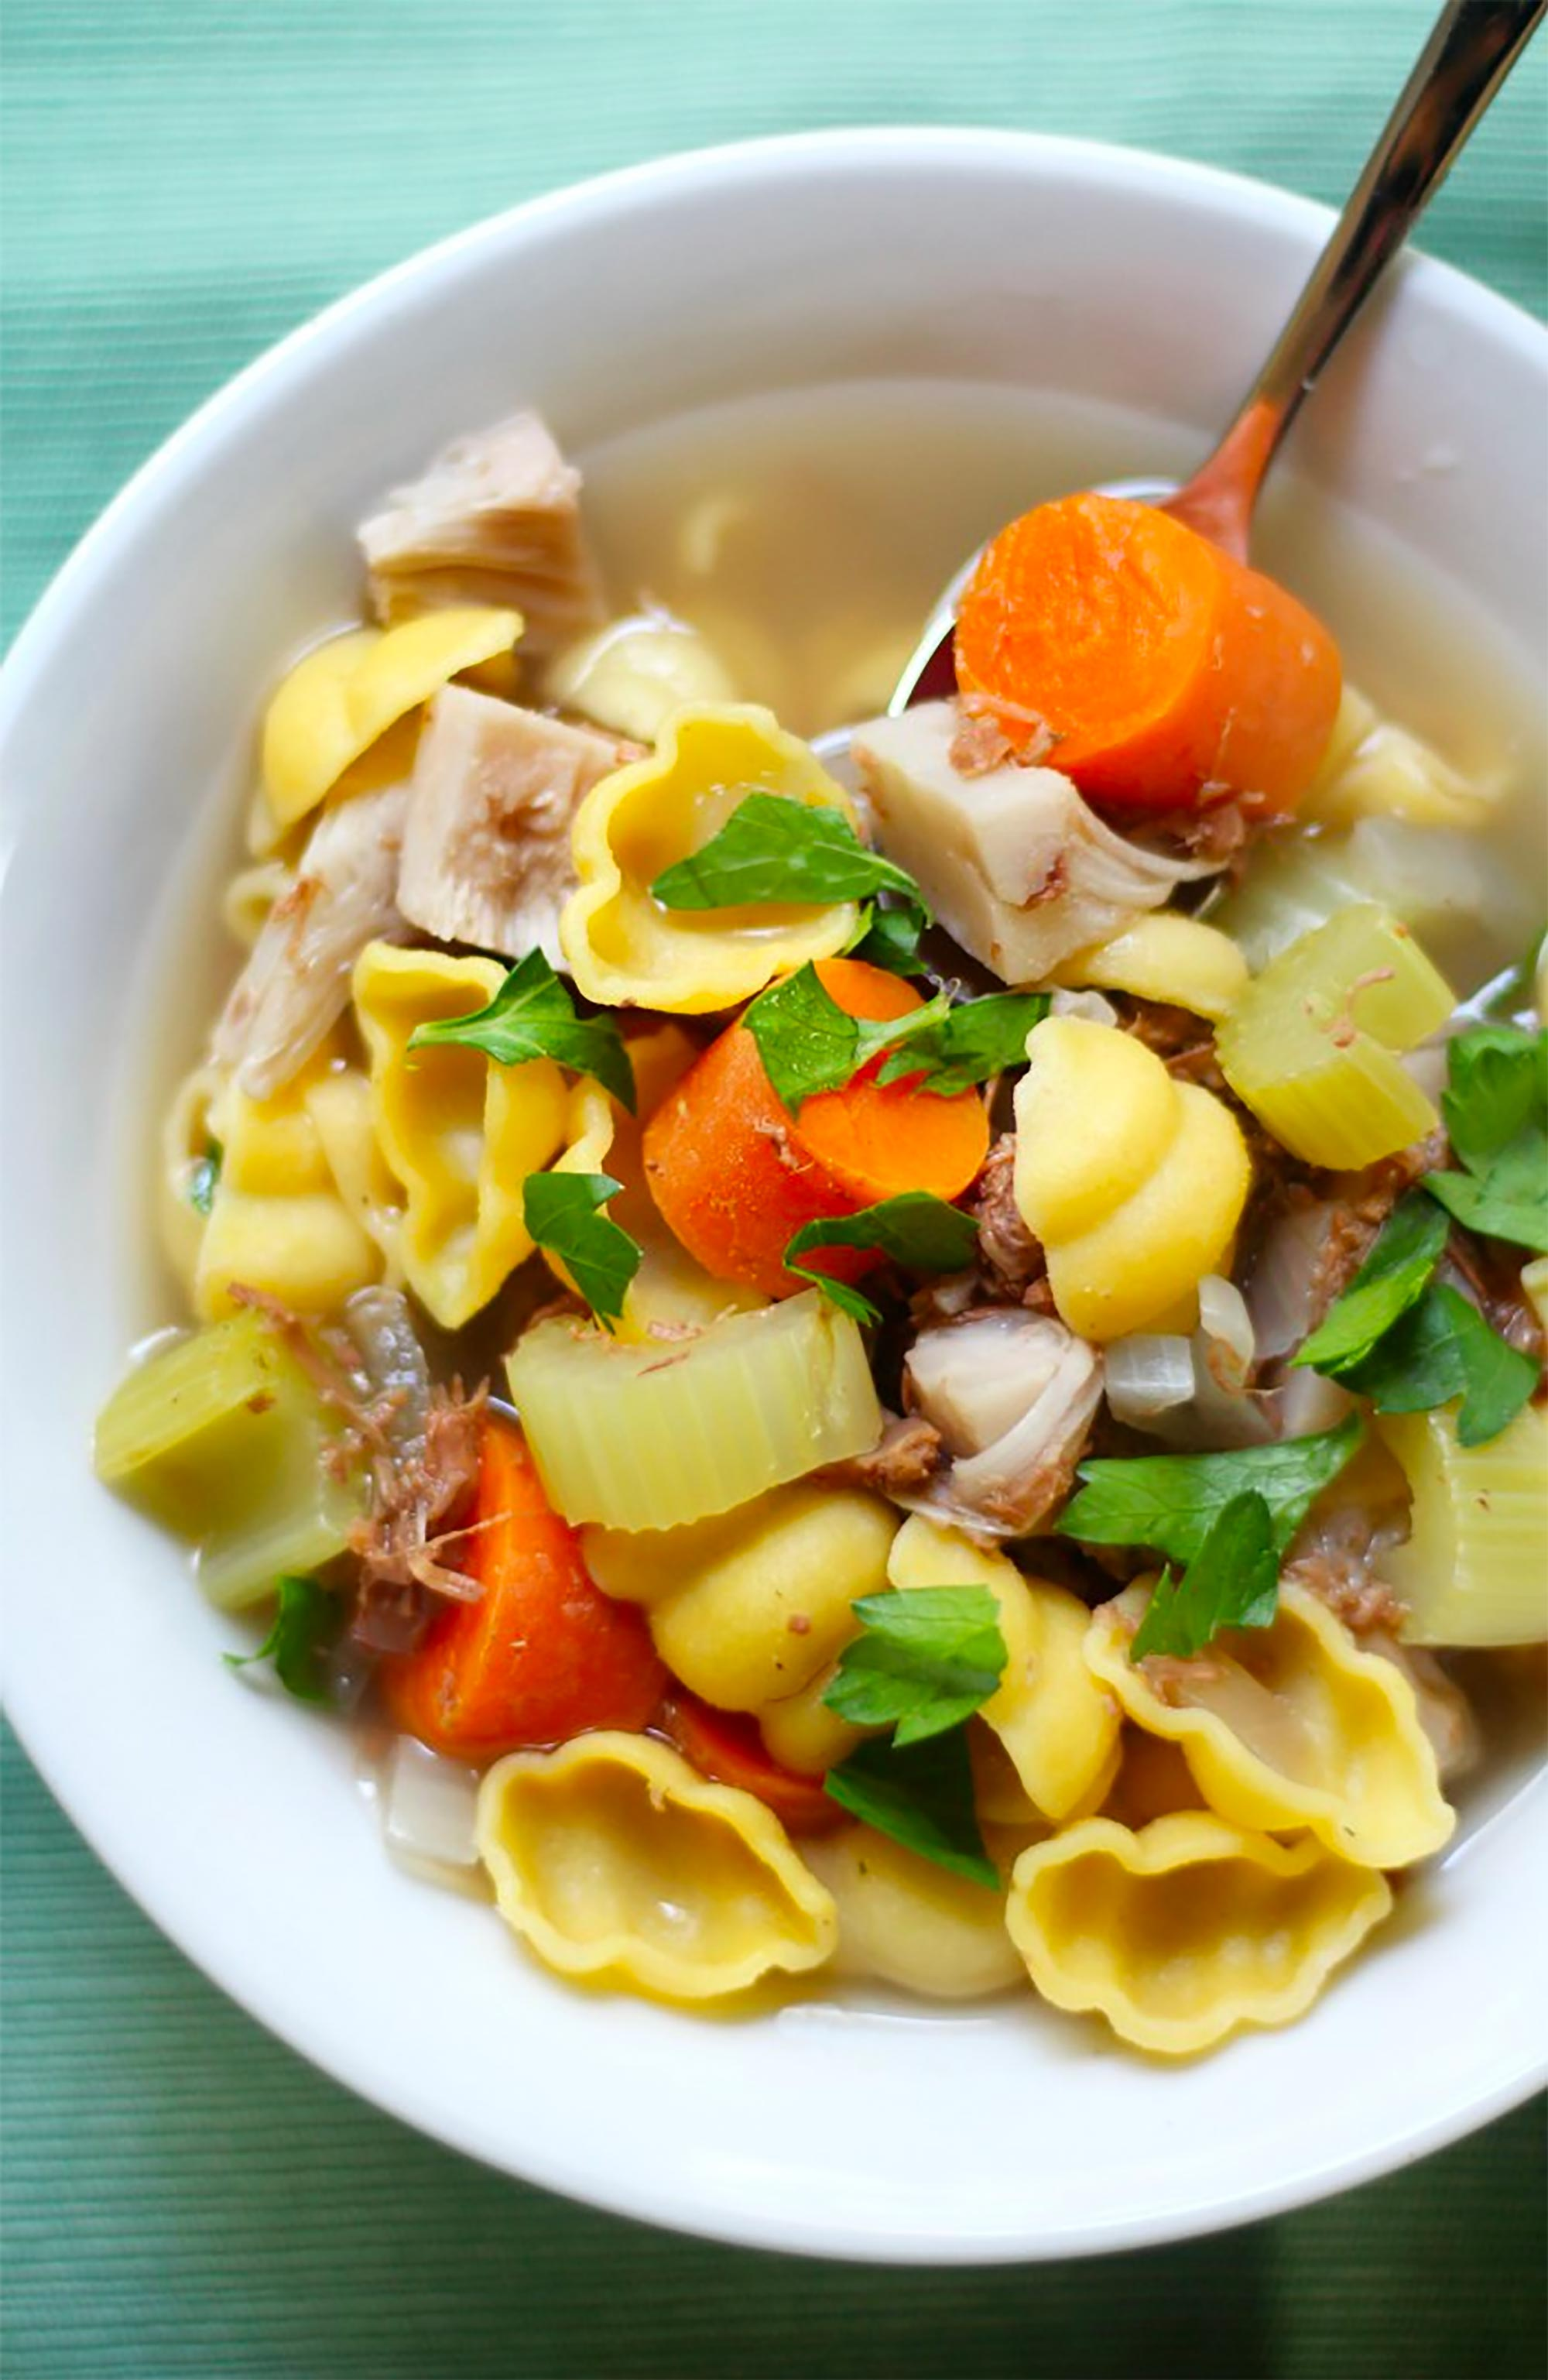 bowl of meatless chicken soup